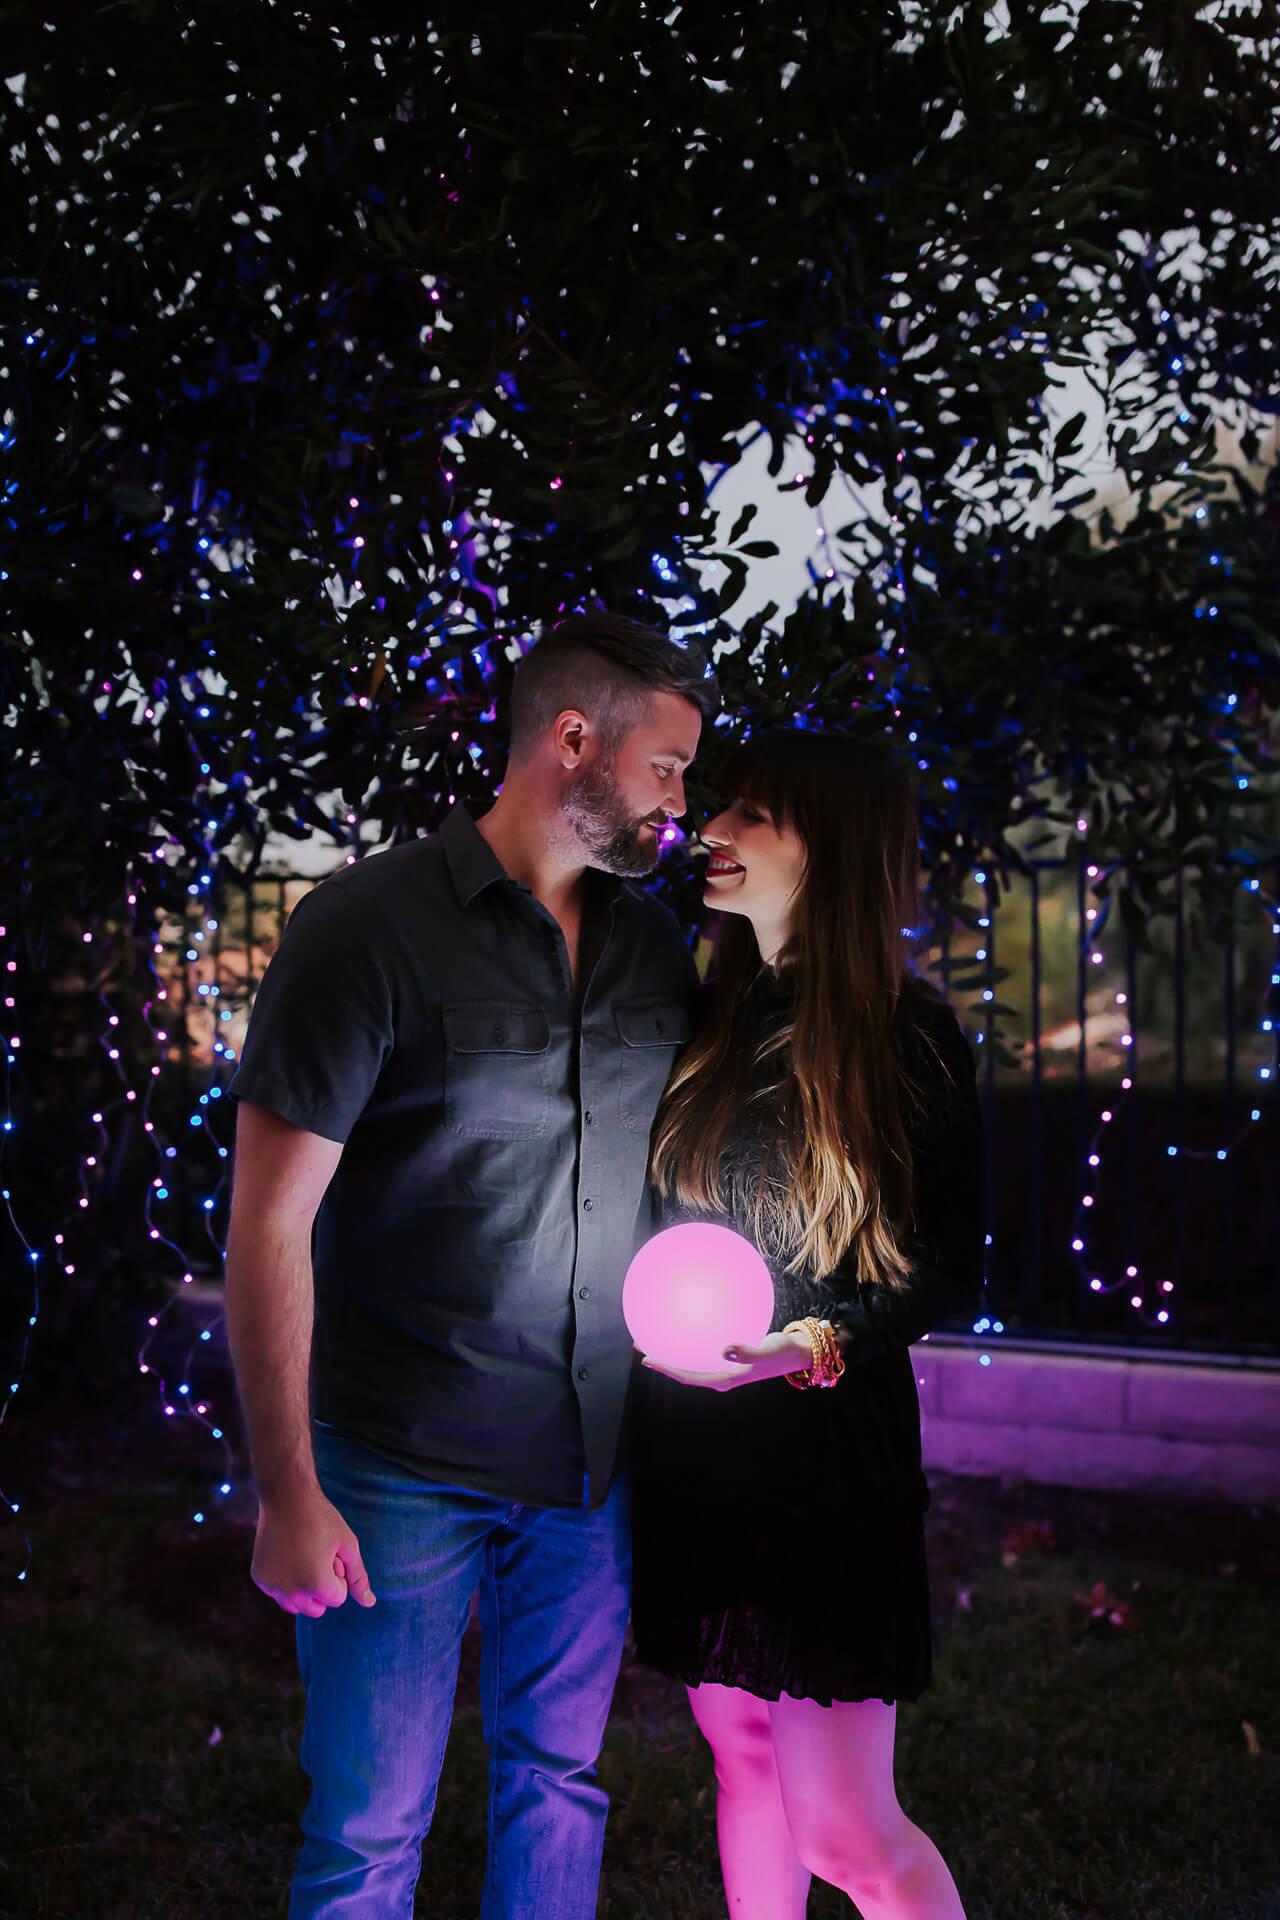 M Loves M Nighttime Gender Reveal with Lights - M Loves M @marmar